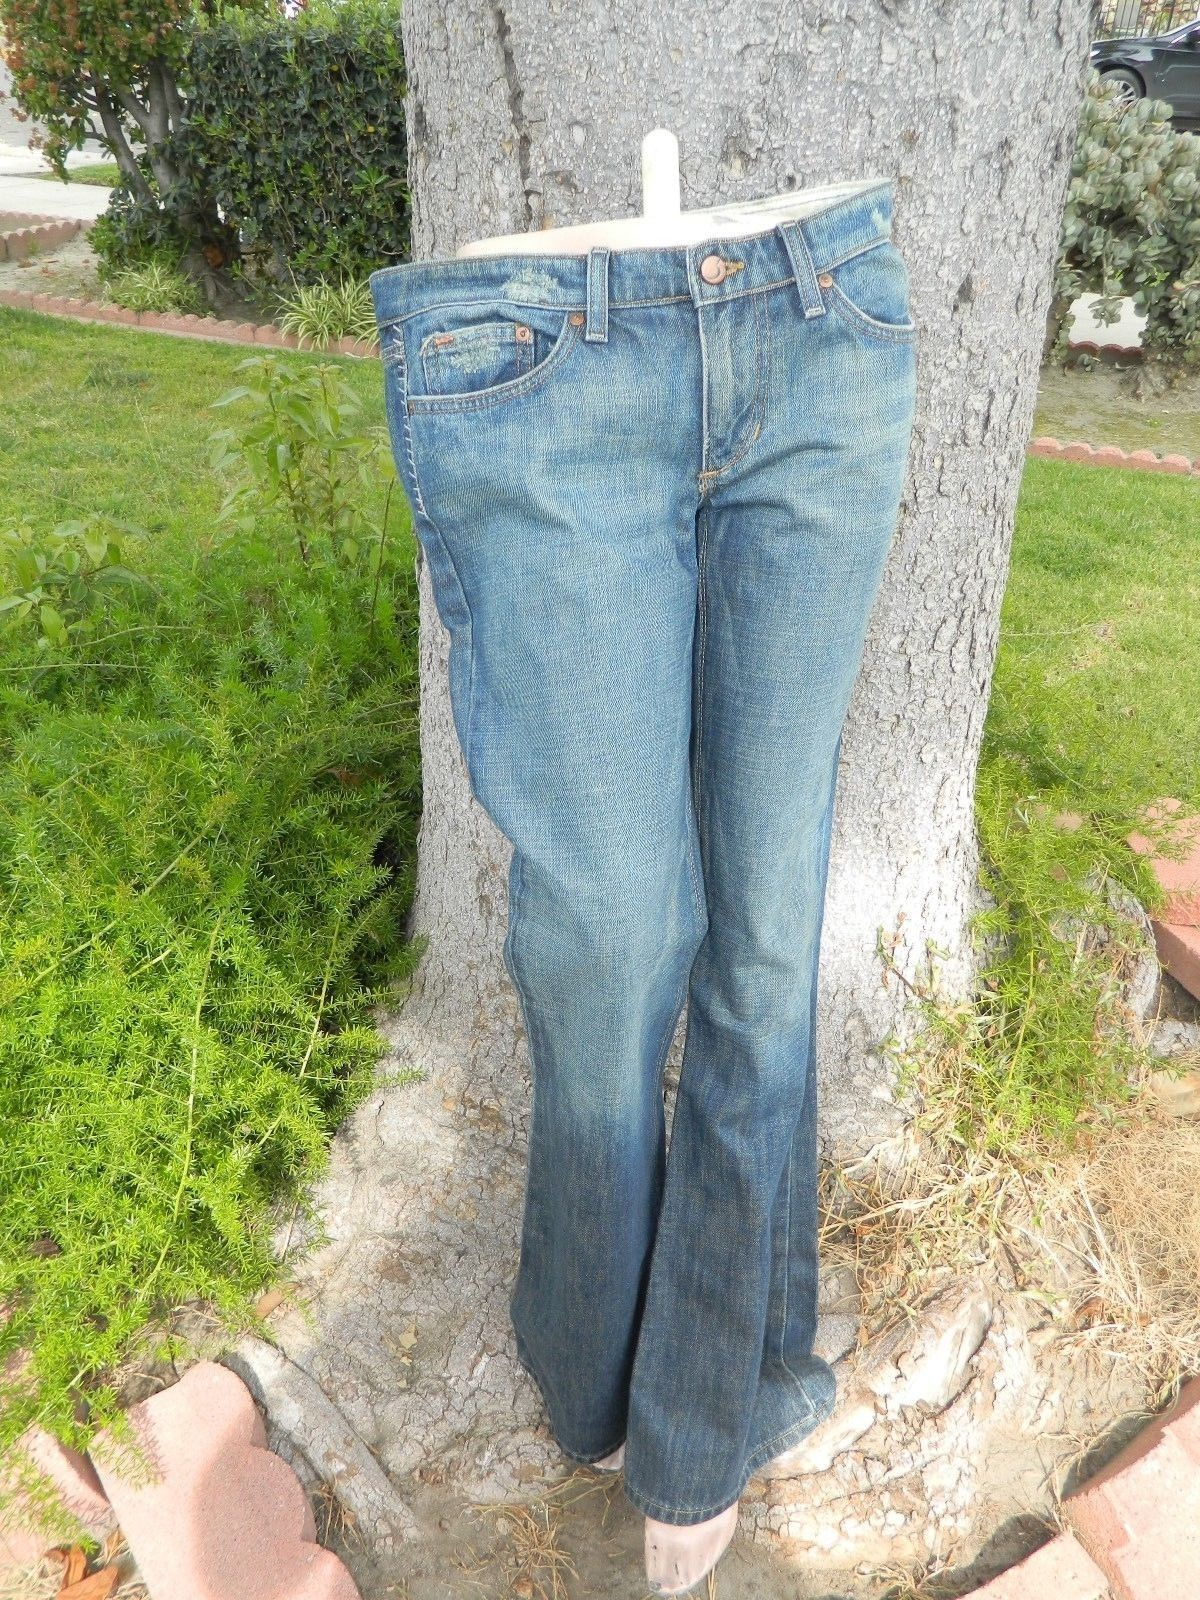 JOE'S VINTAGE SERIES 1971 WOMEN'S JEANS EMBROIDERED POCKETS Sz 31